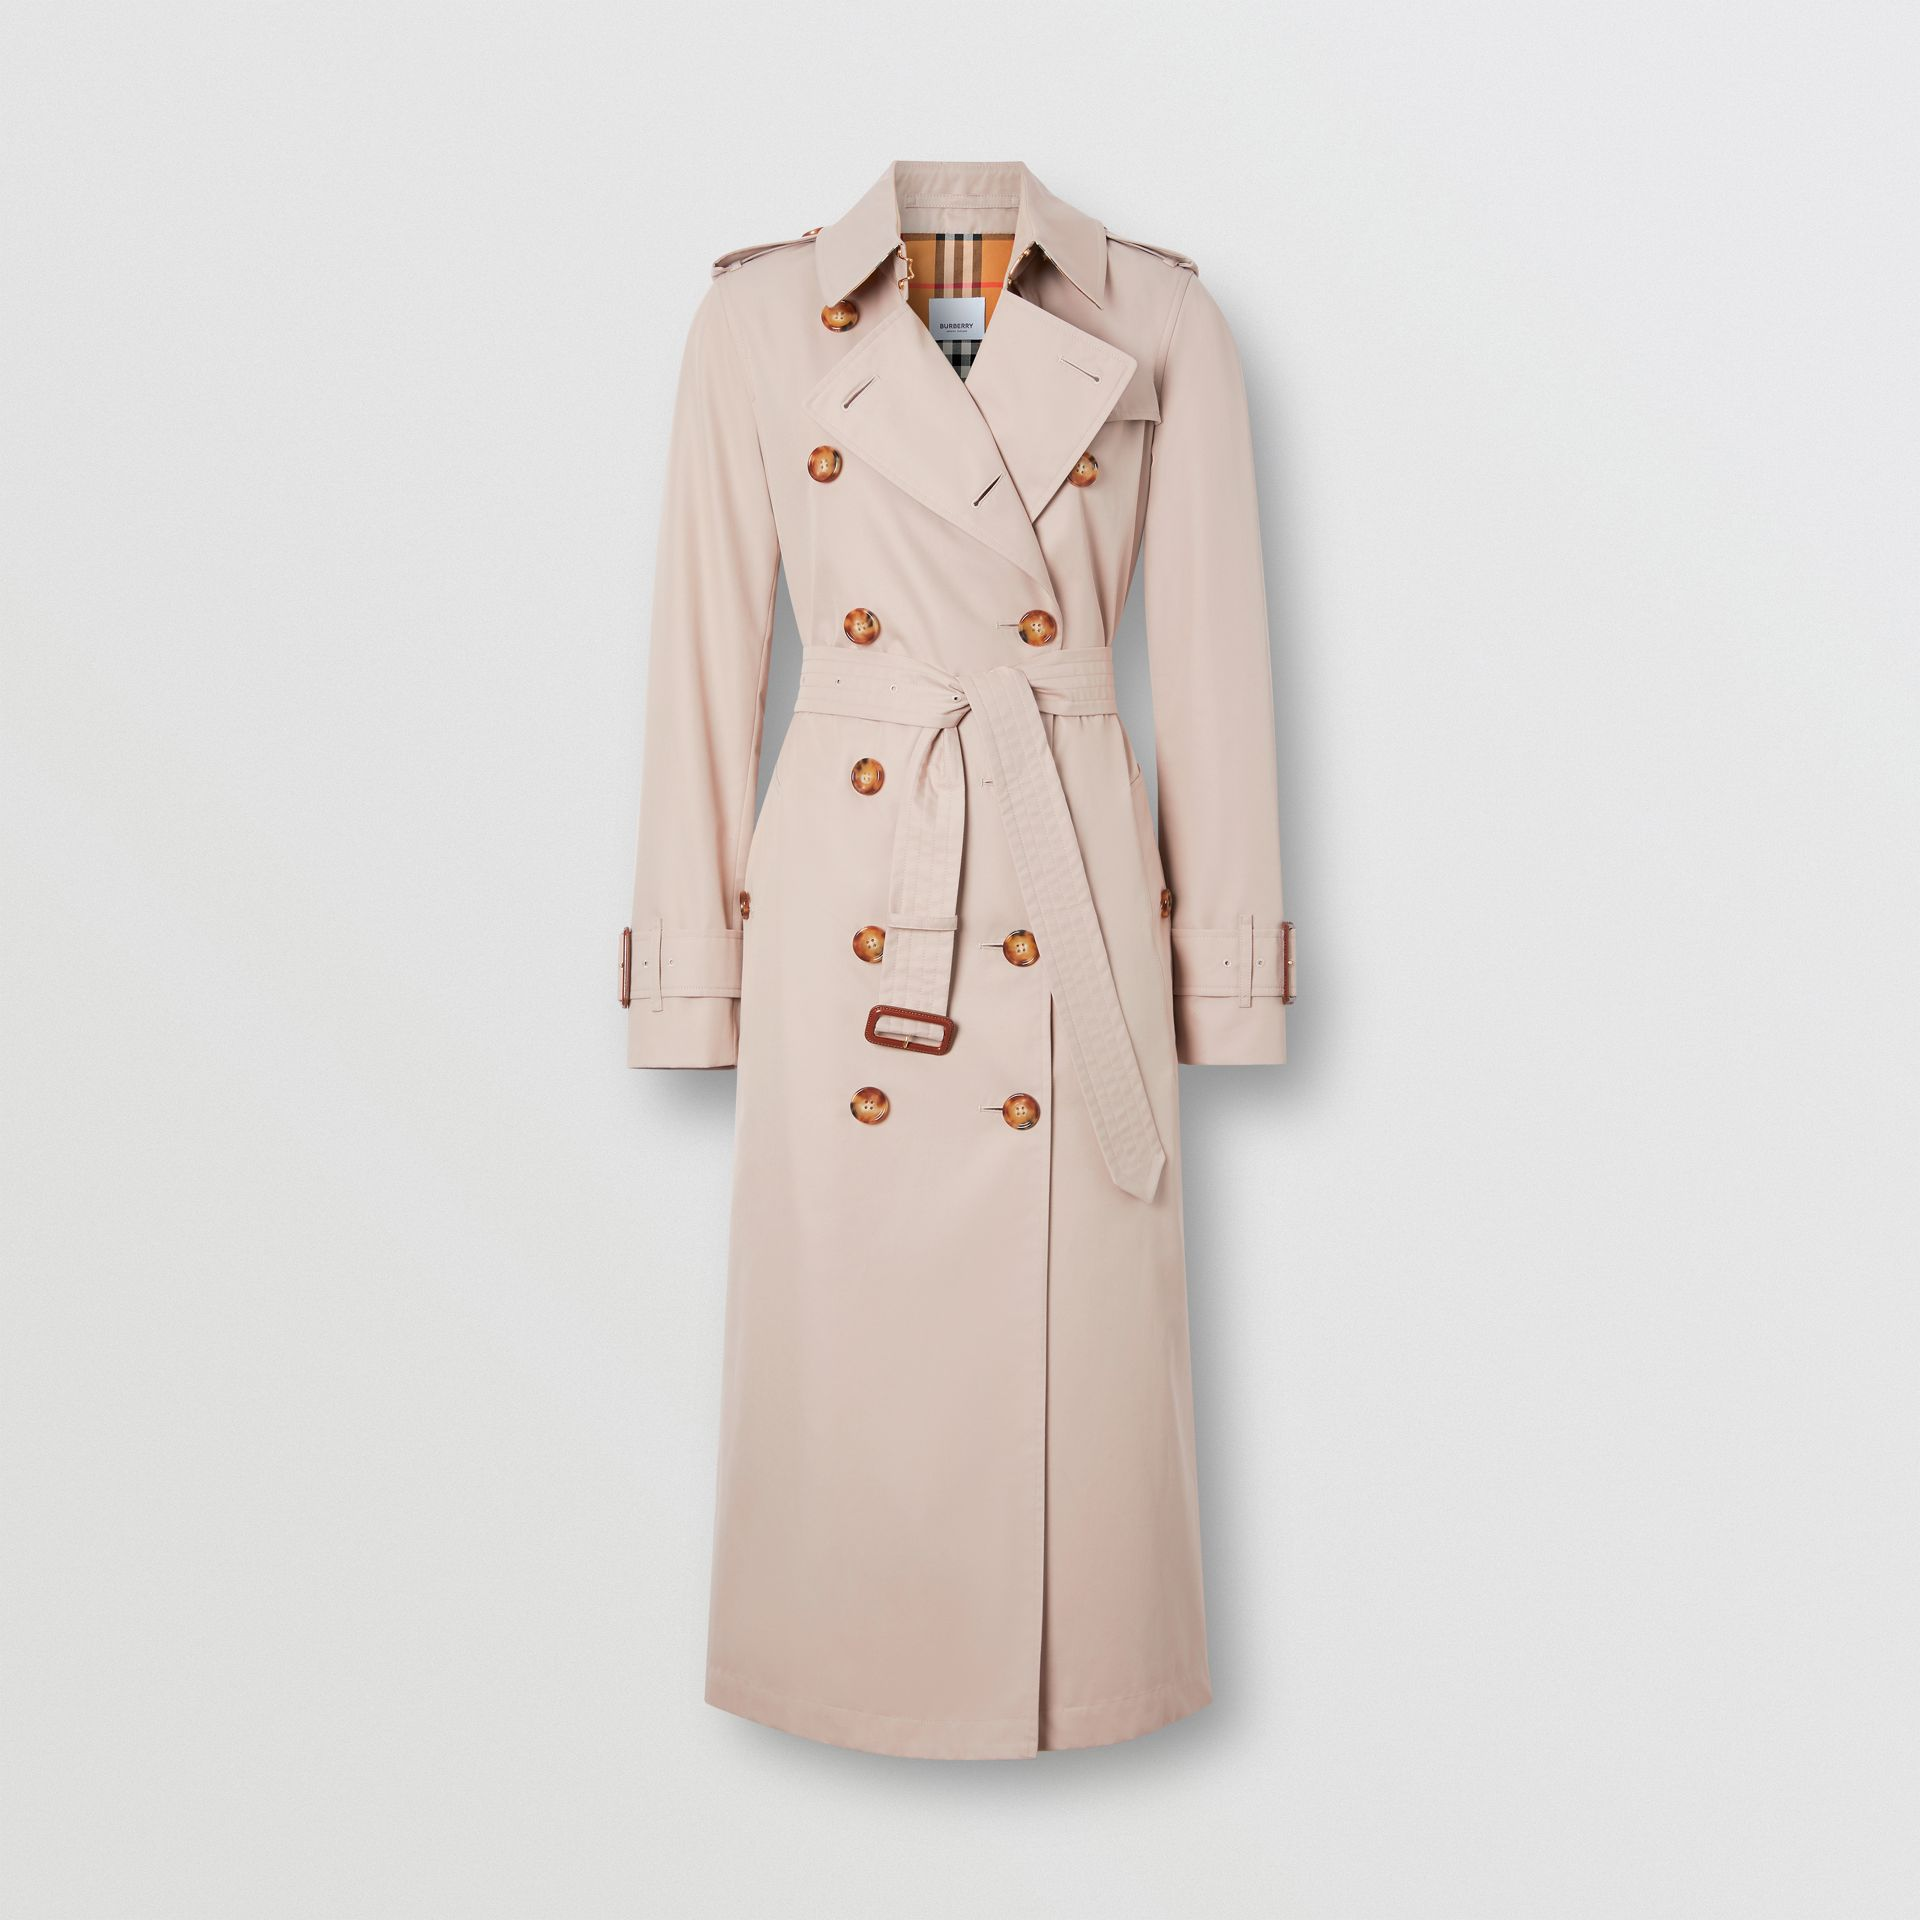 Cotton Gabardine Trench Coat in Pale Blush - Women | Burberry - gallery image 3